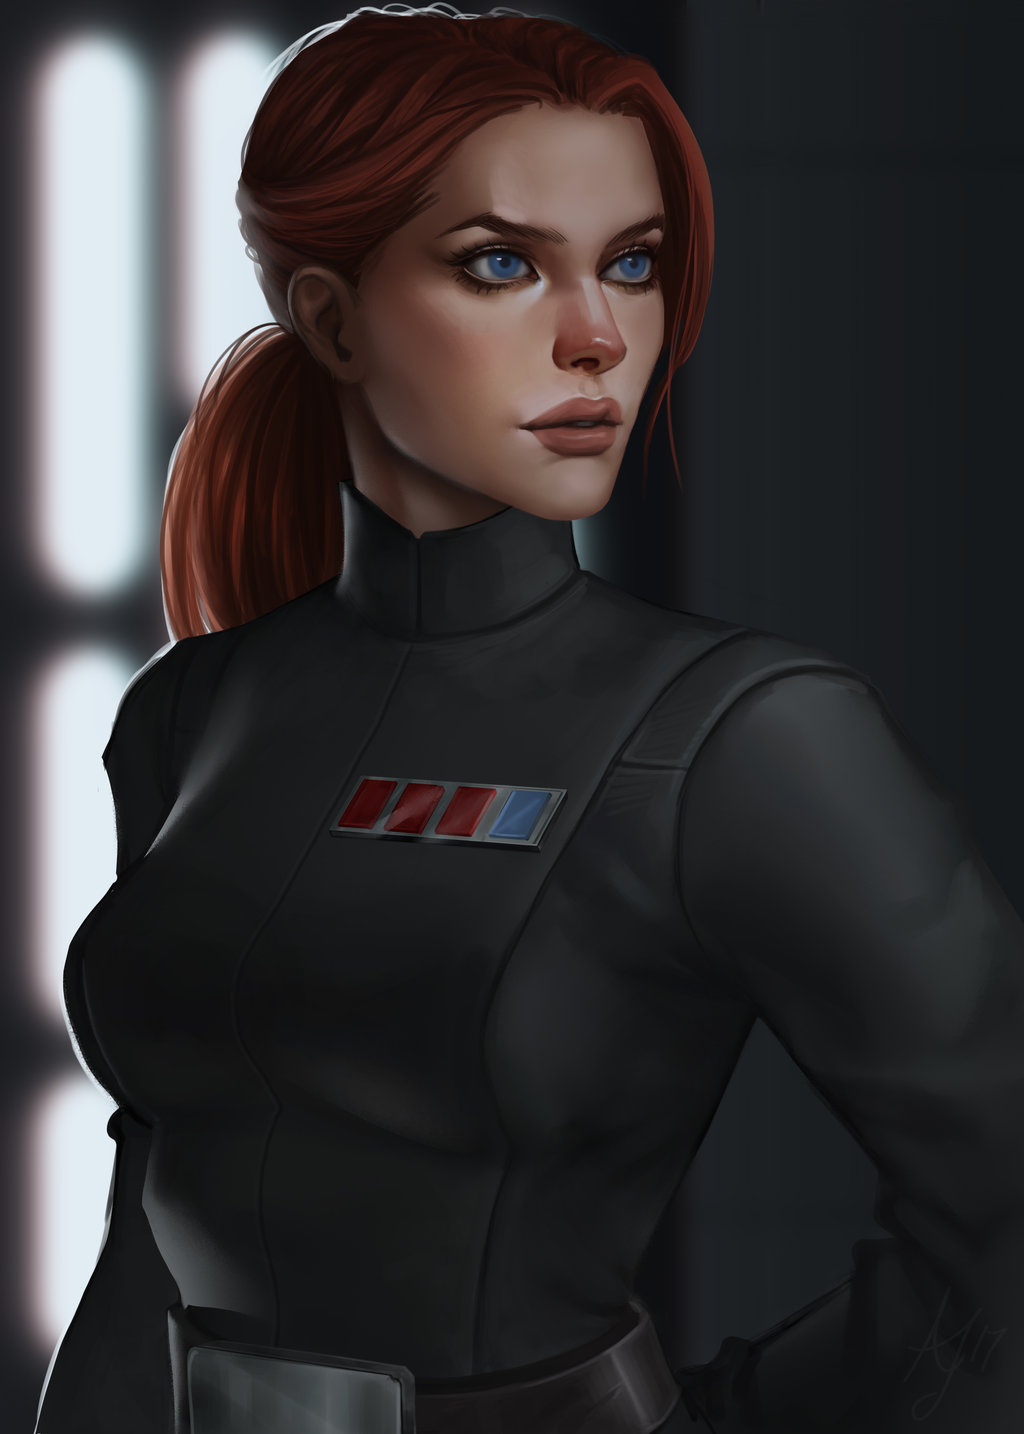 Kaylann Vicktate - Female Imperial Officer